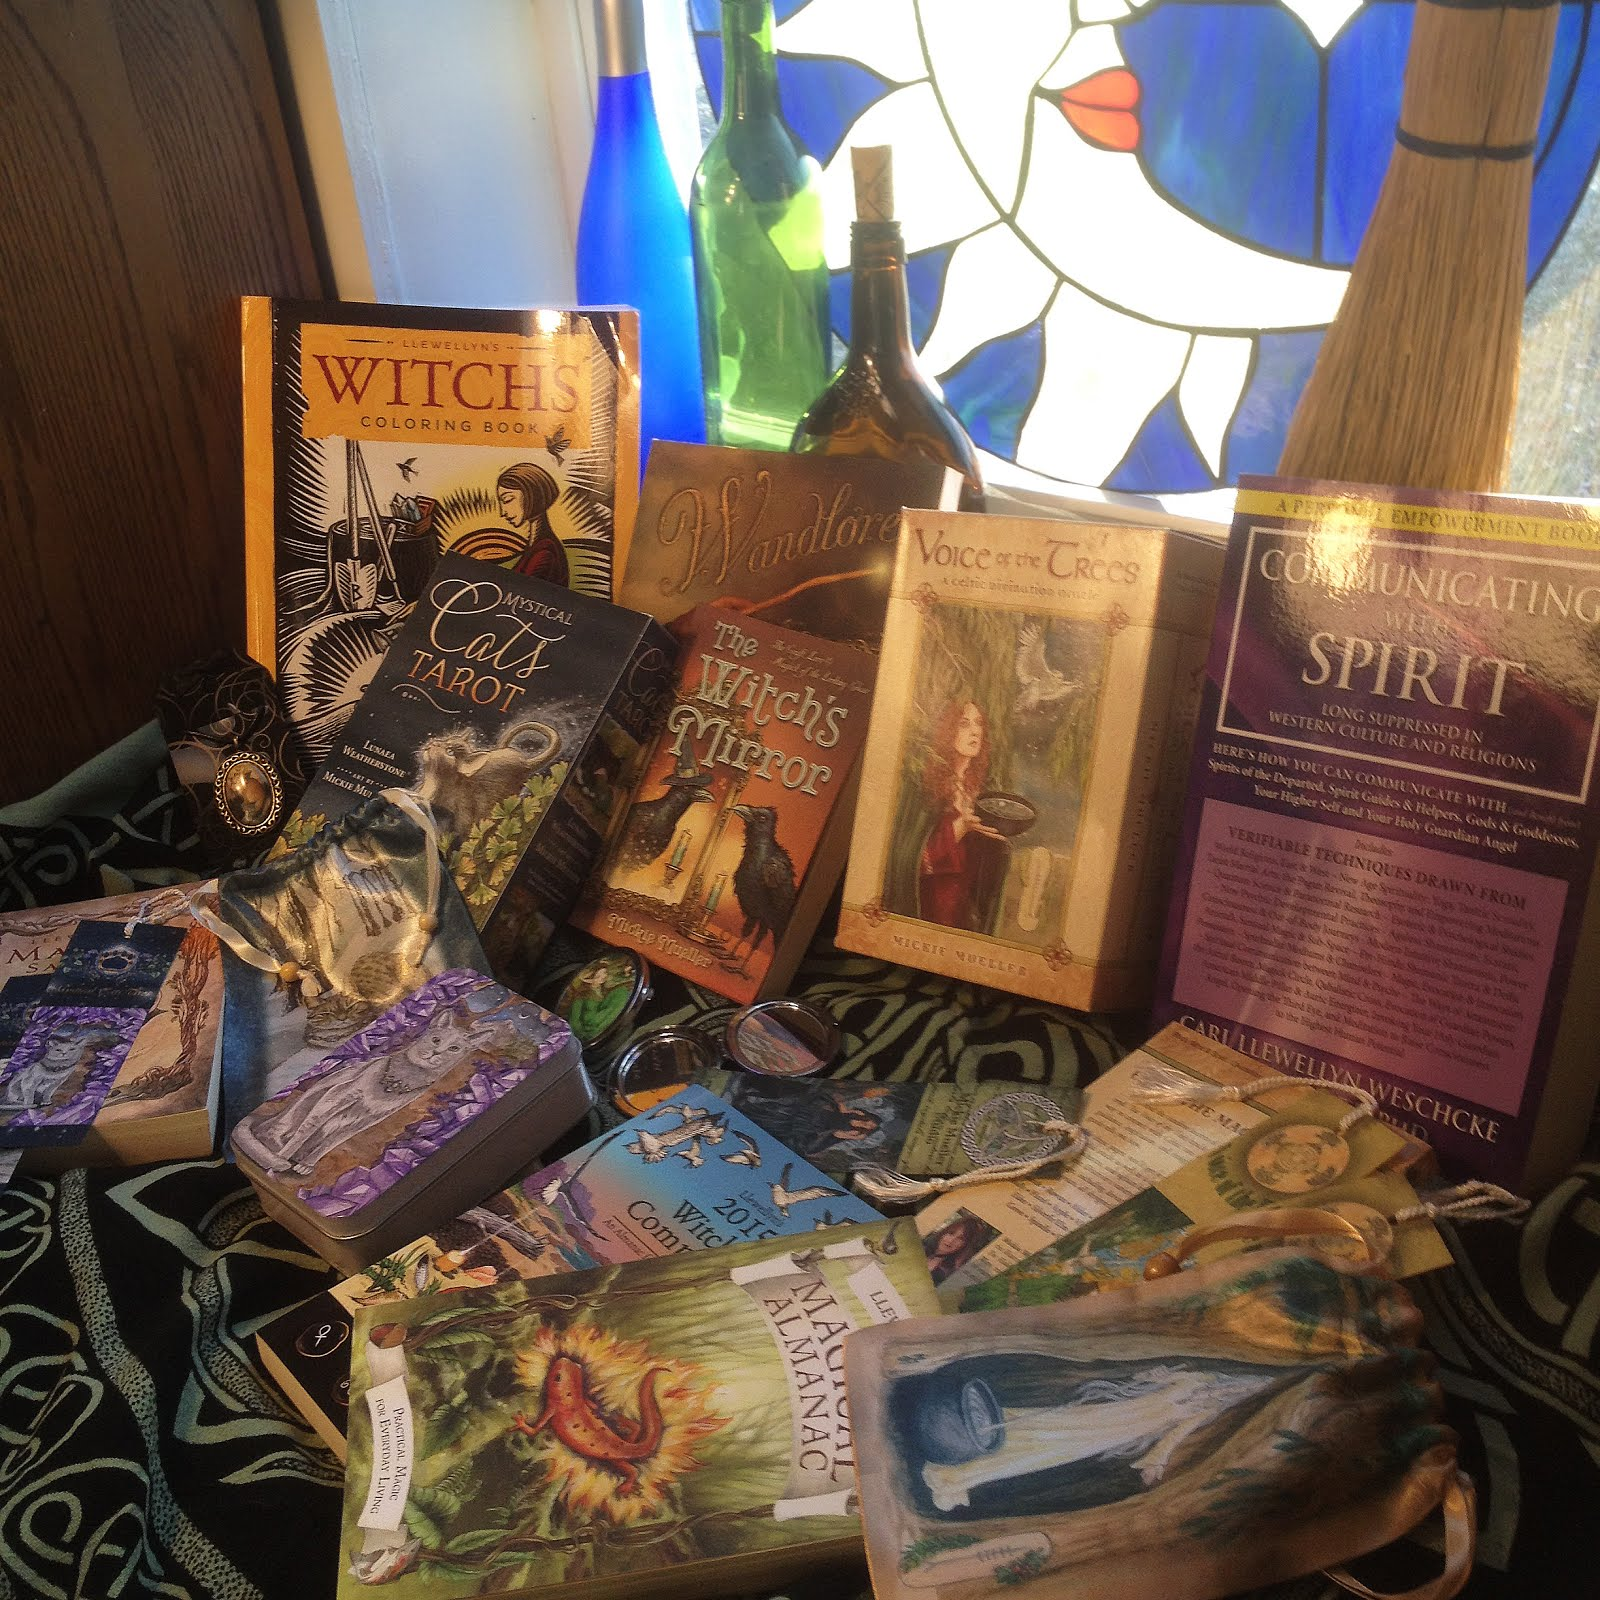 Some Of My Books And Decks Ive Written I Contributed Articles To These Illustrated Come See Me At The Authors Booth St